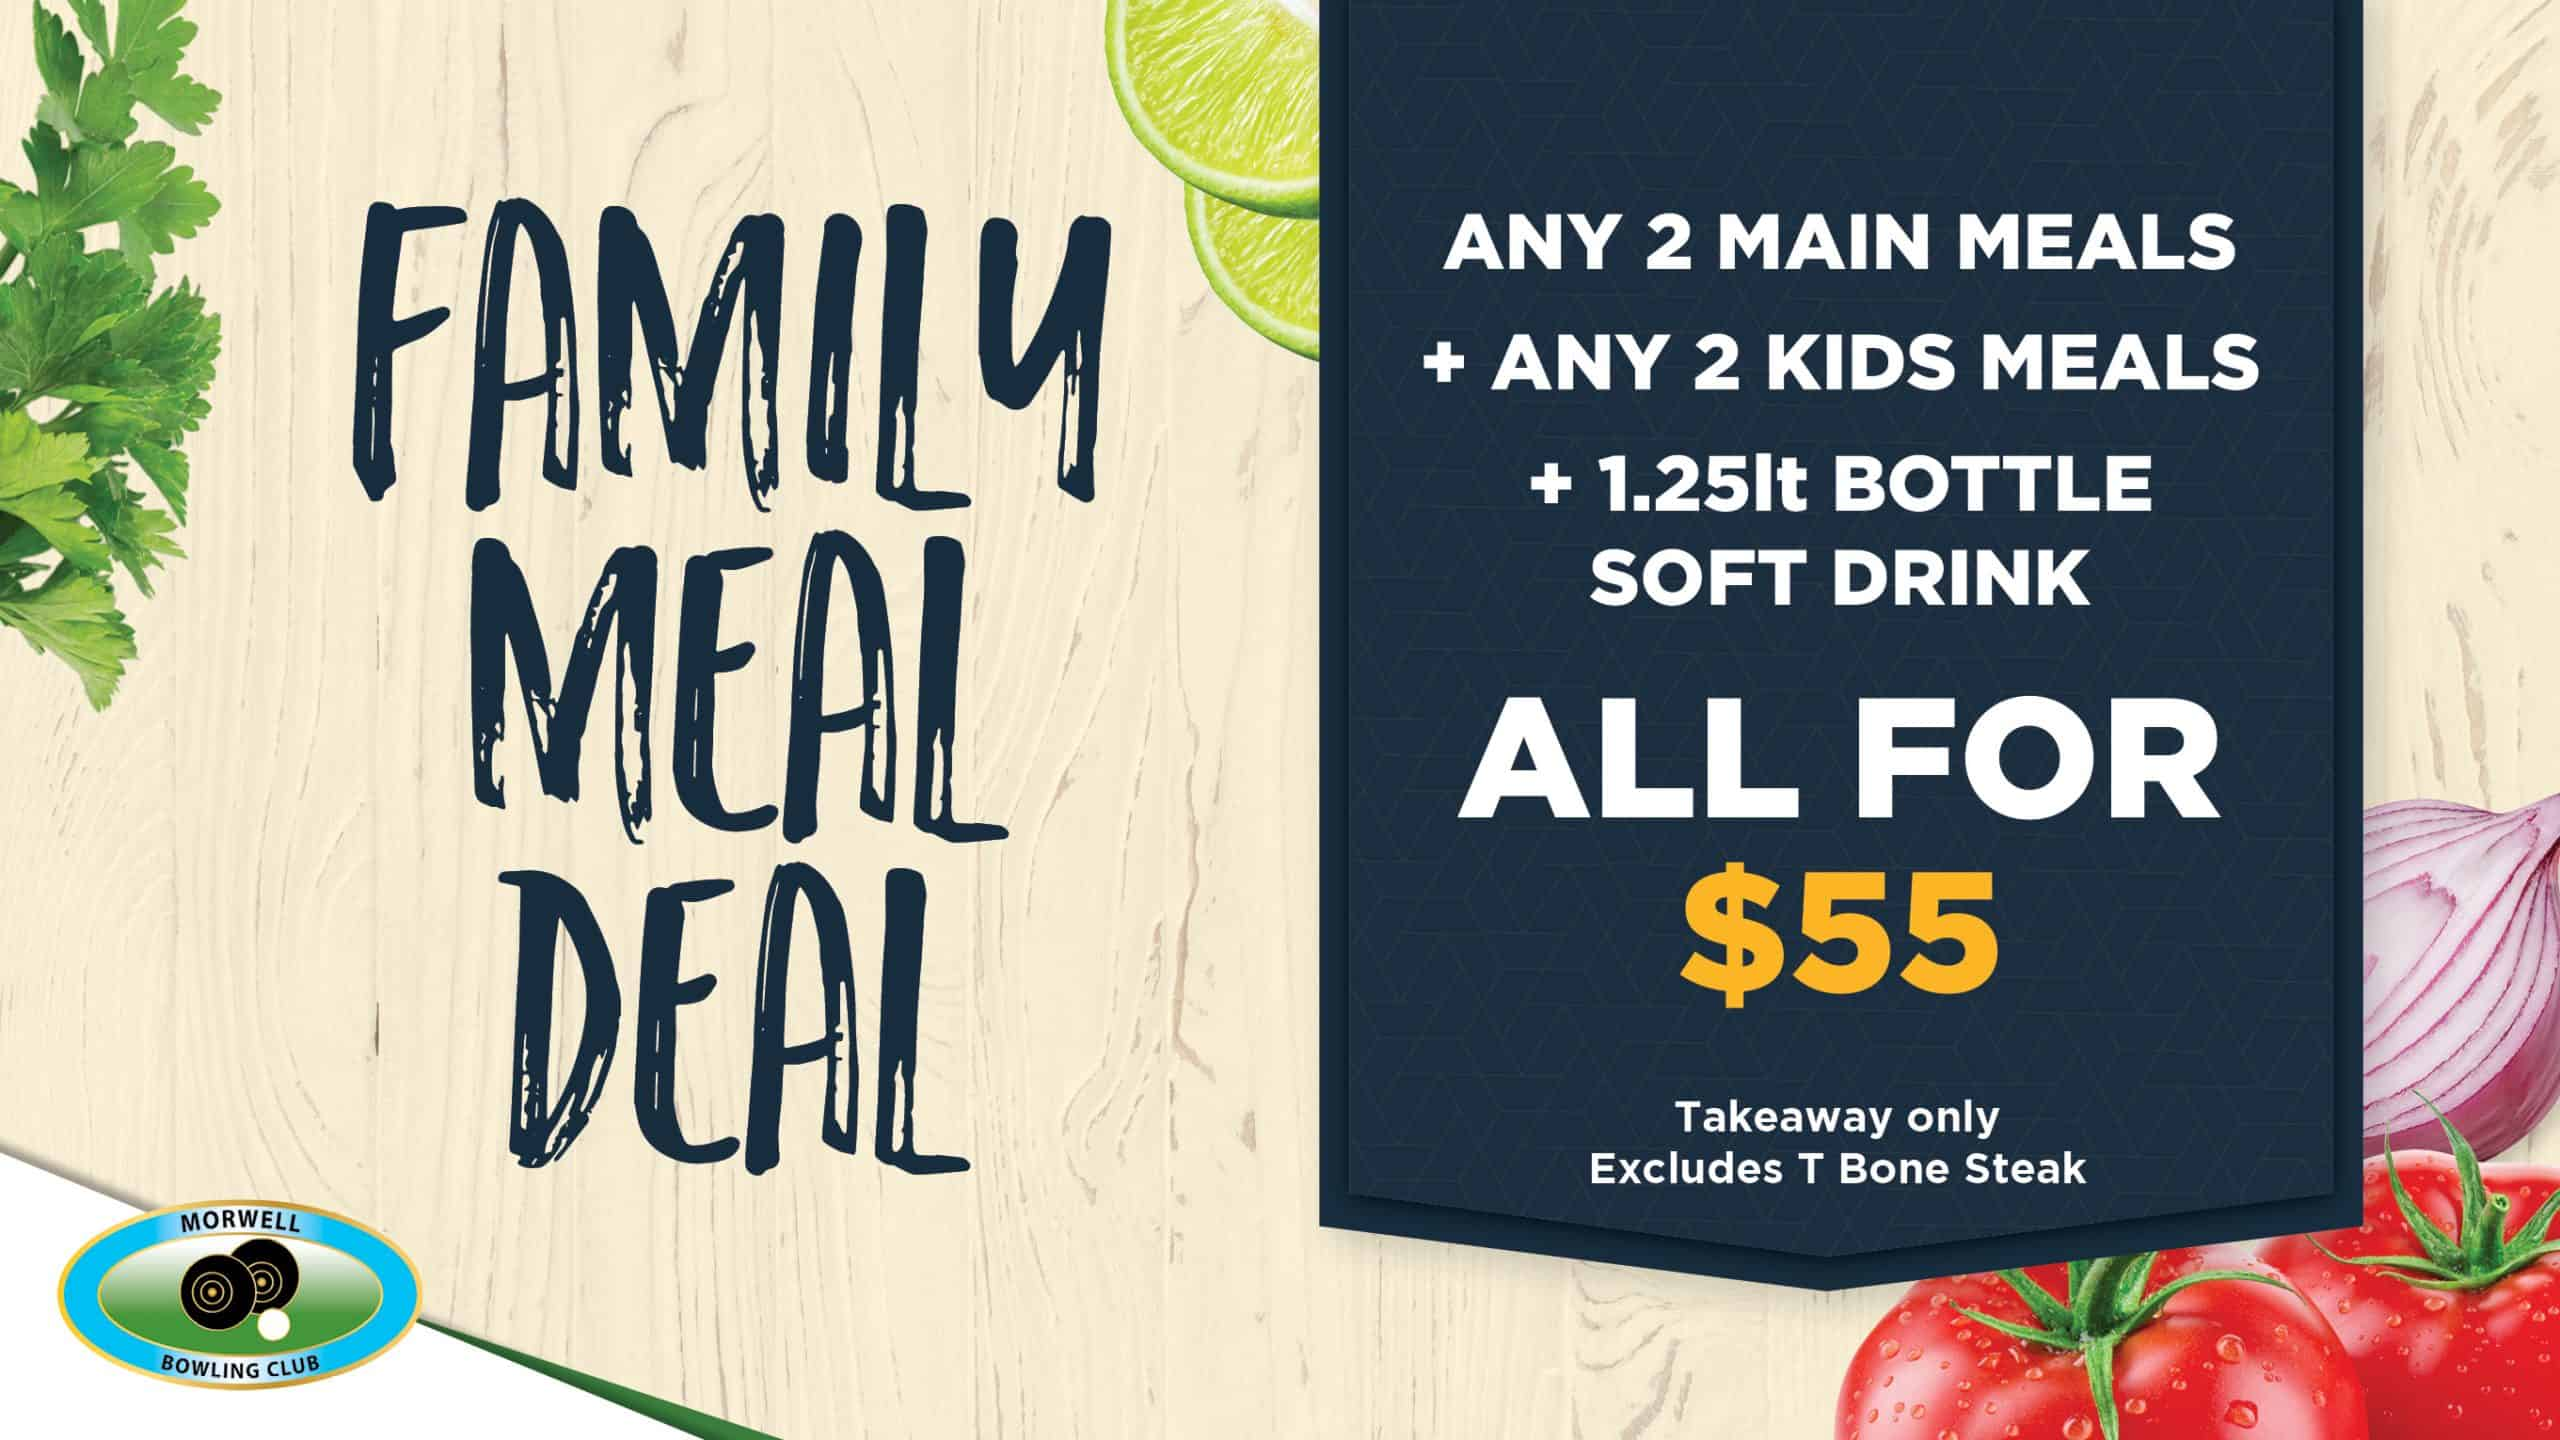 MBC0921-06 Family Meal Deal Update HDTV